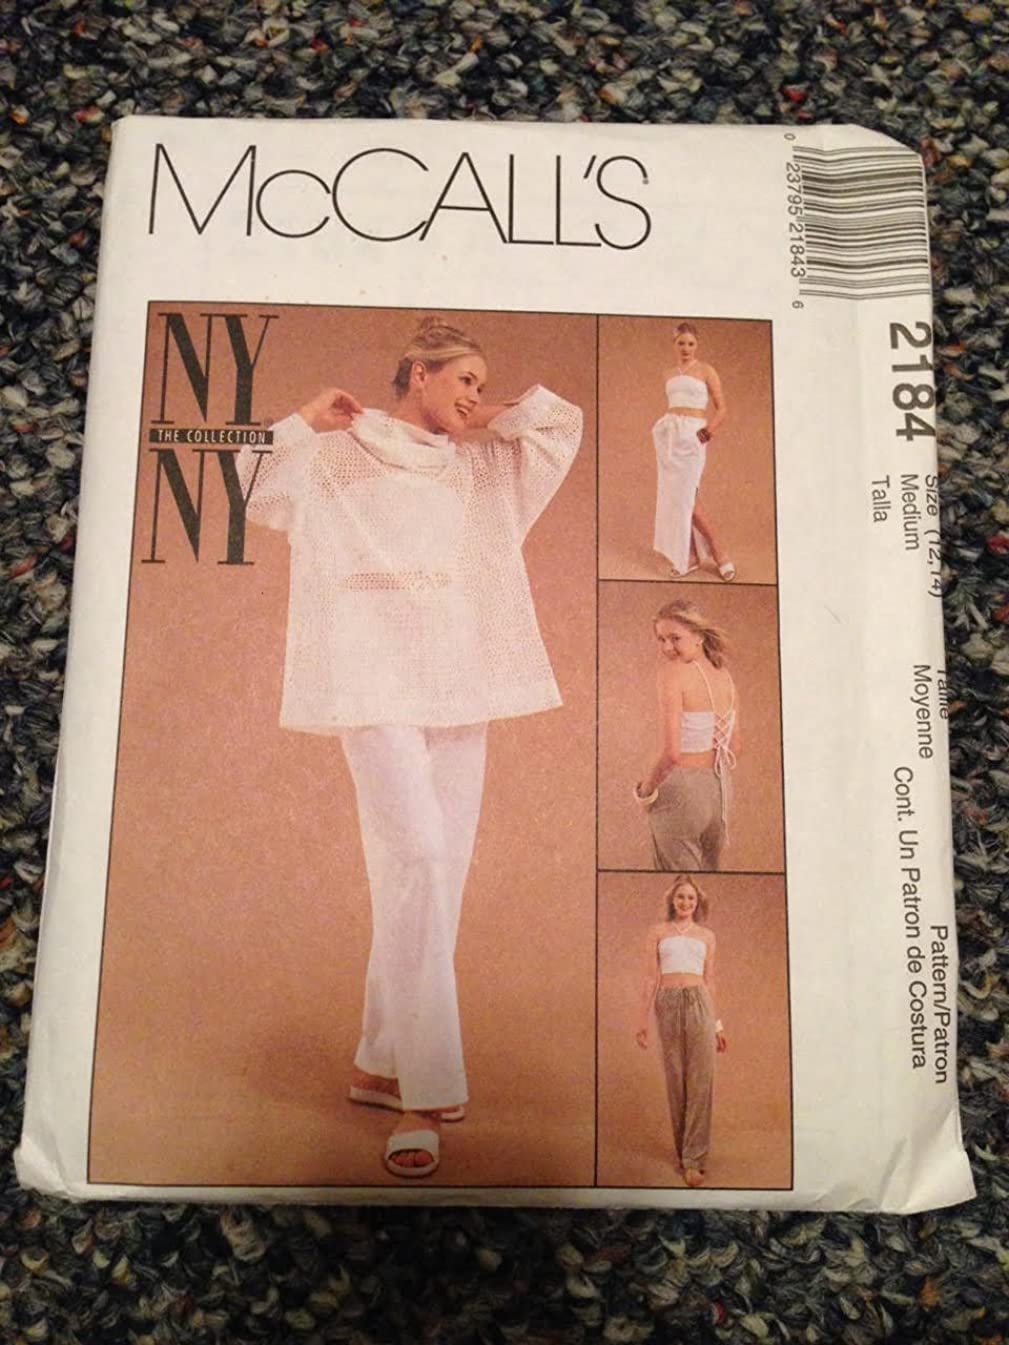 McCall's 2184 Sewing Pattern, Misses' Pullover Top, Halter Top, Pull-On Pants and Skirt, Size Medium (12,14)